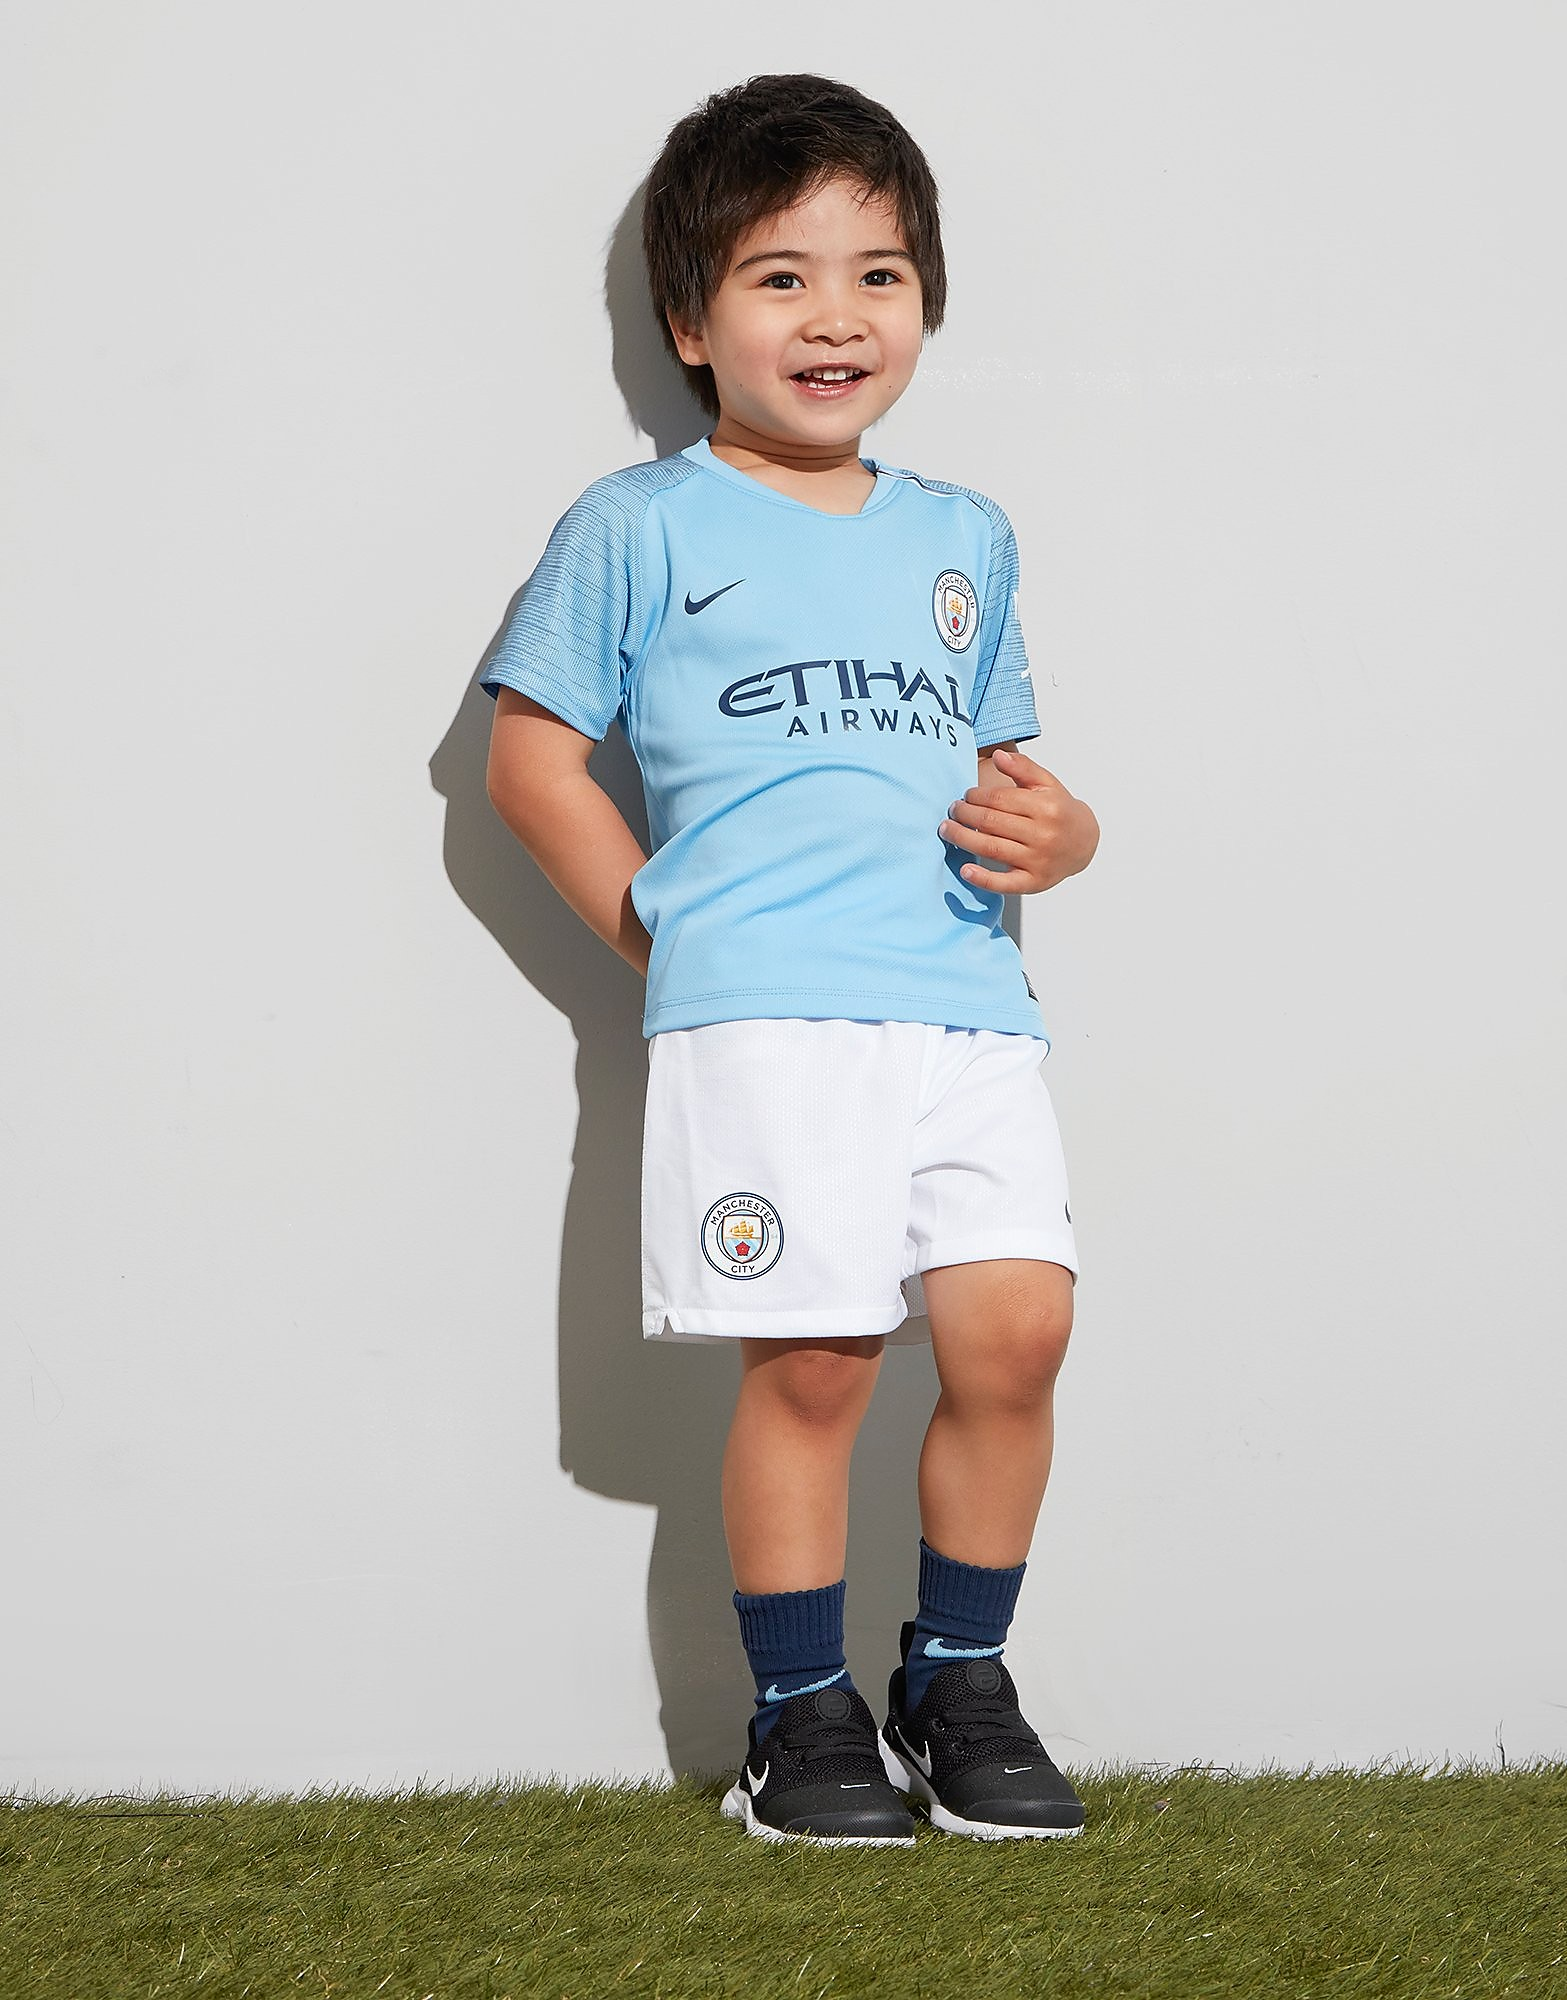 Nike Manchester City 2018/19 Home Kit Baby's